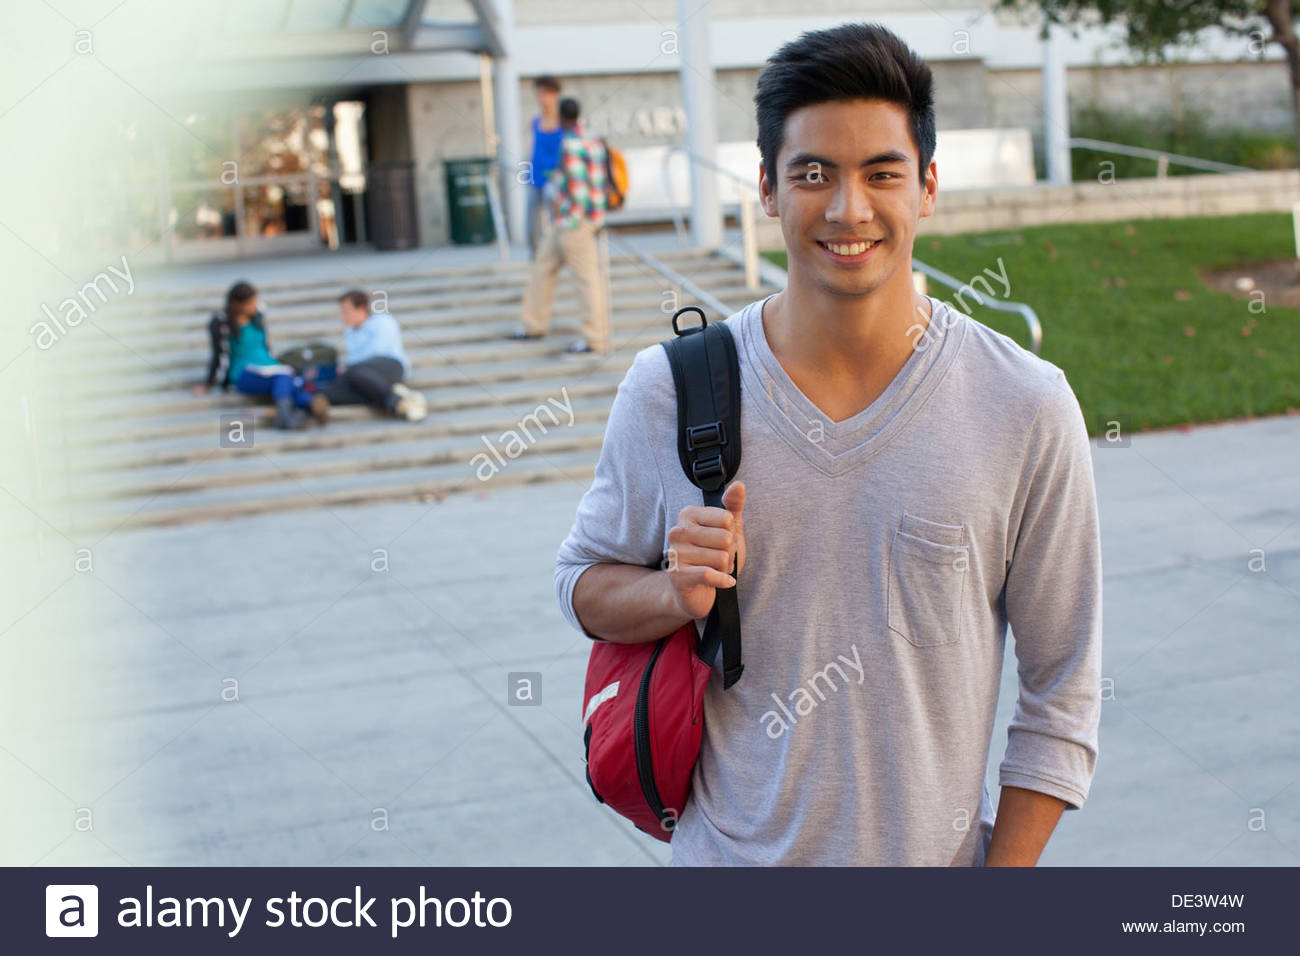 Student on campus - Stock Image